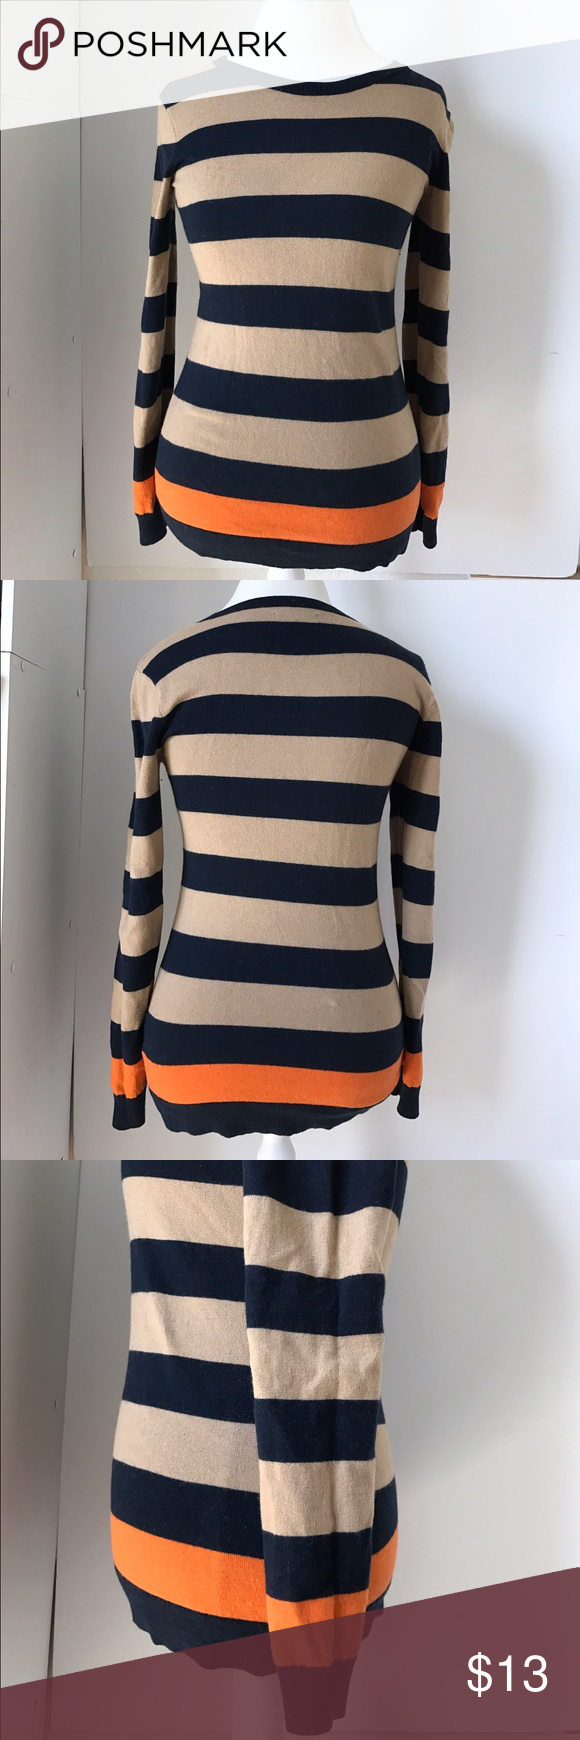 Orange striped sweater | Scoop neck, Navy blue and Conditioning